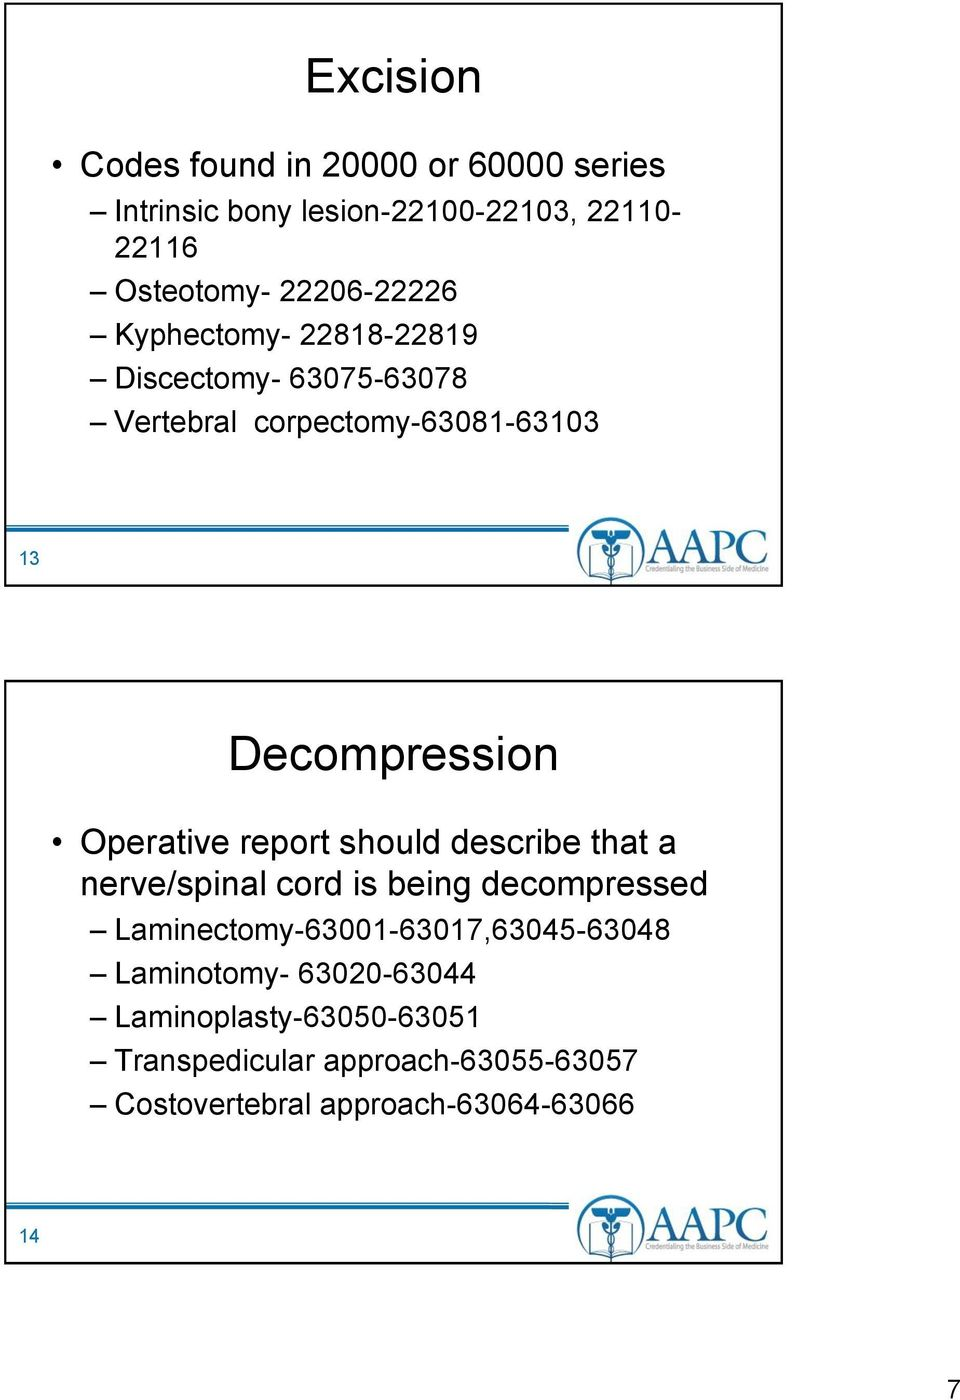 Operative report should describe that a nerve/spinal cord is being decompressed